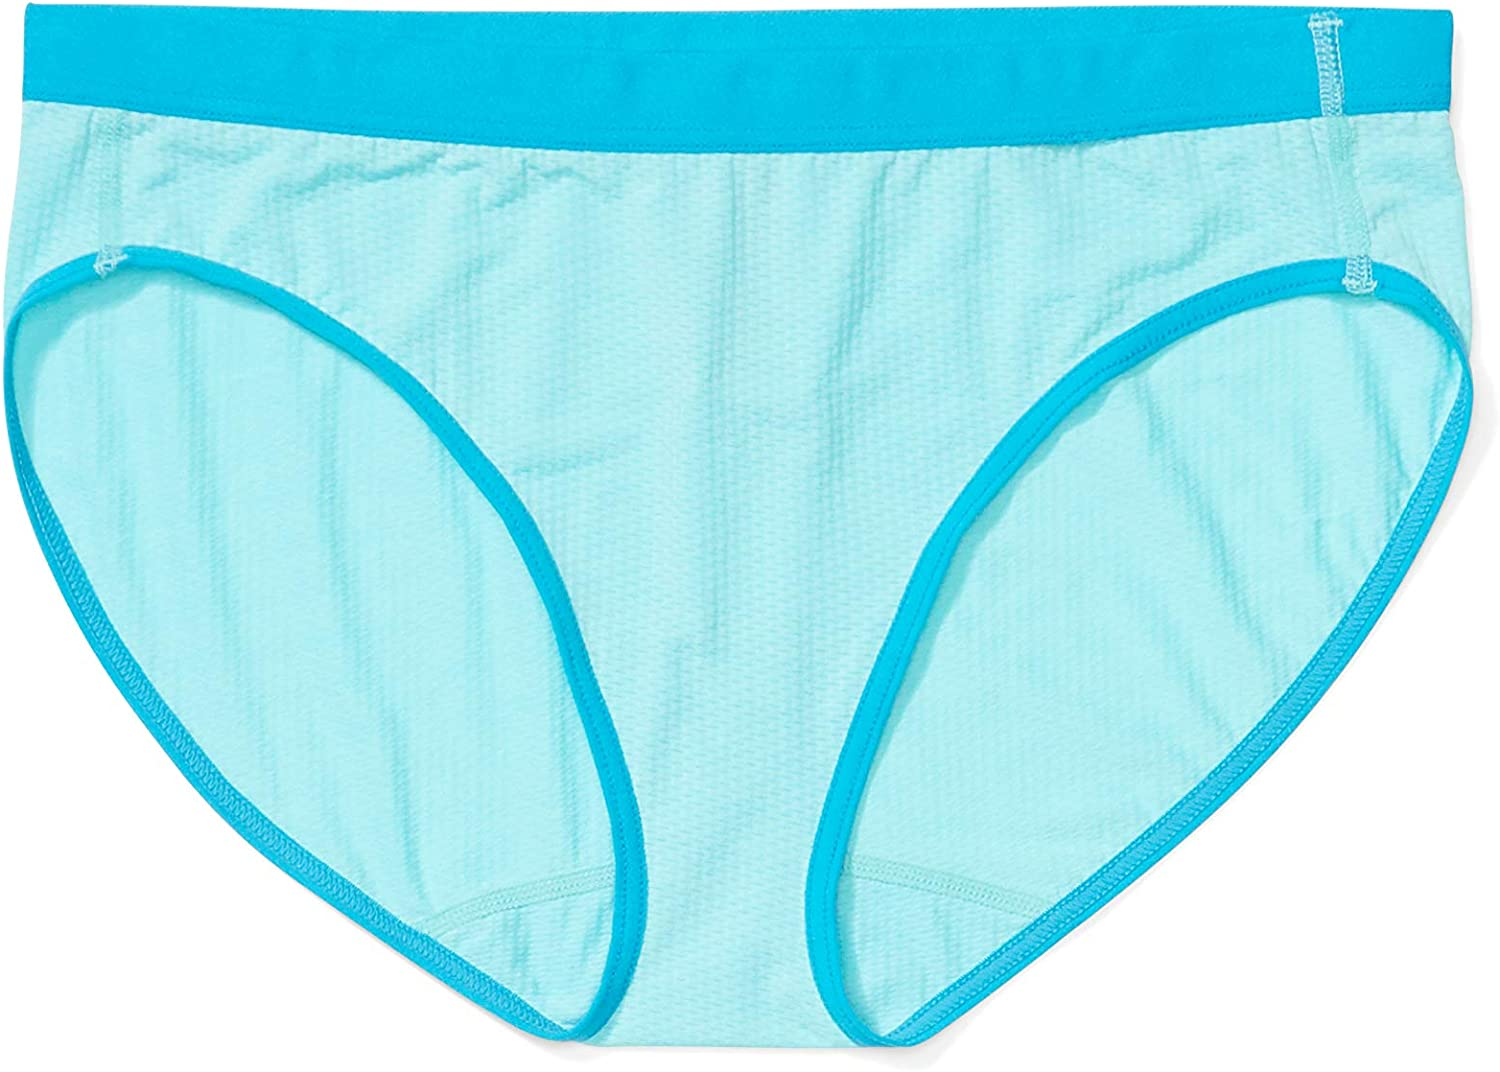 ExOfficio Women's Give-n-go Sport 2.0 Bikini Brief